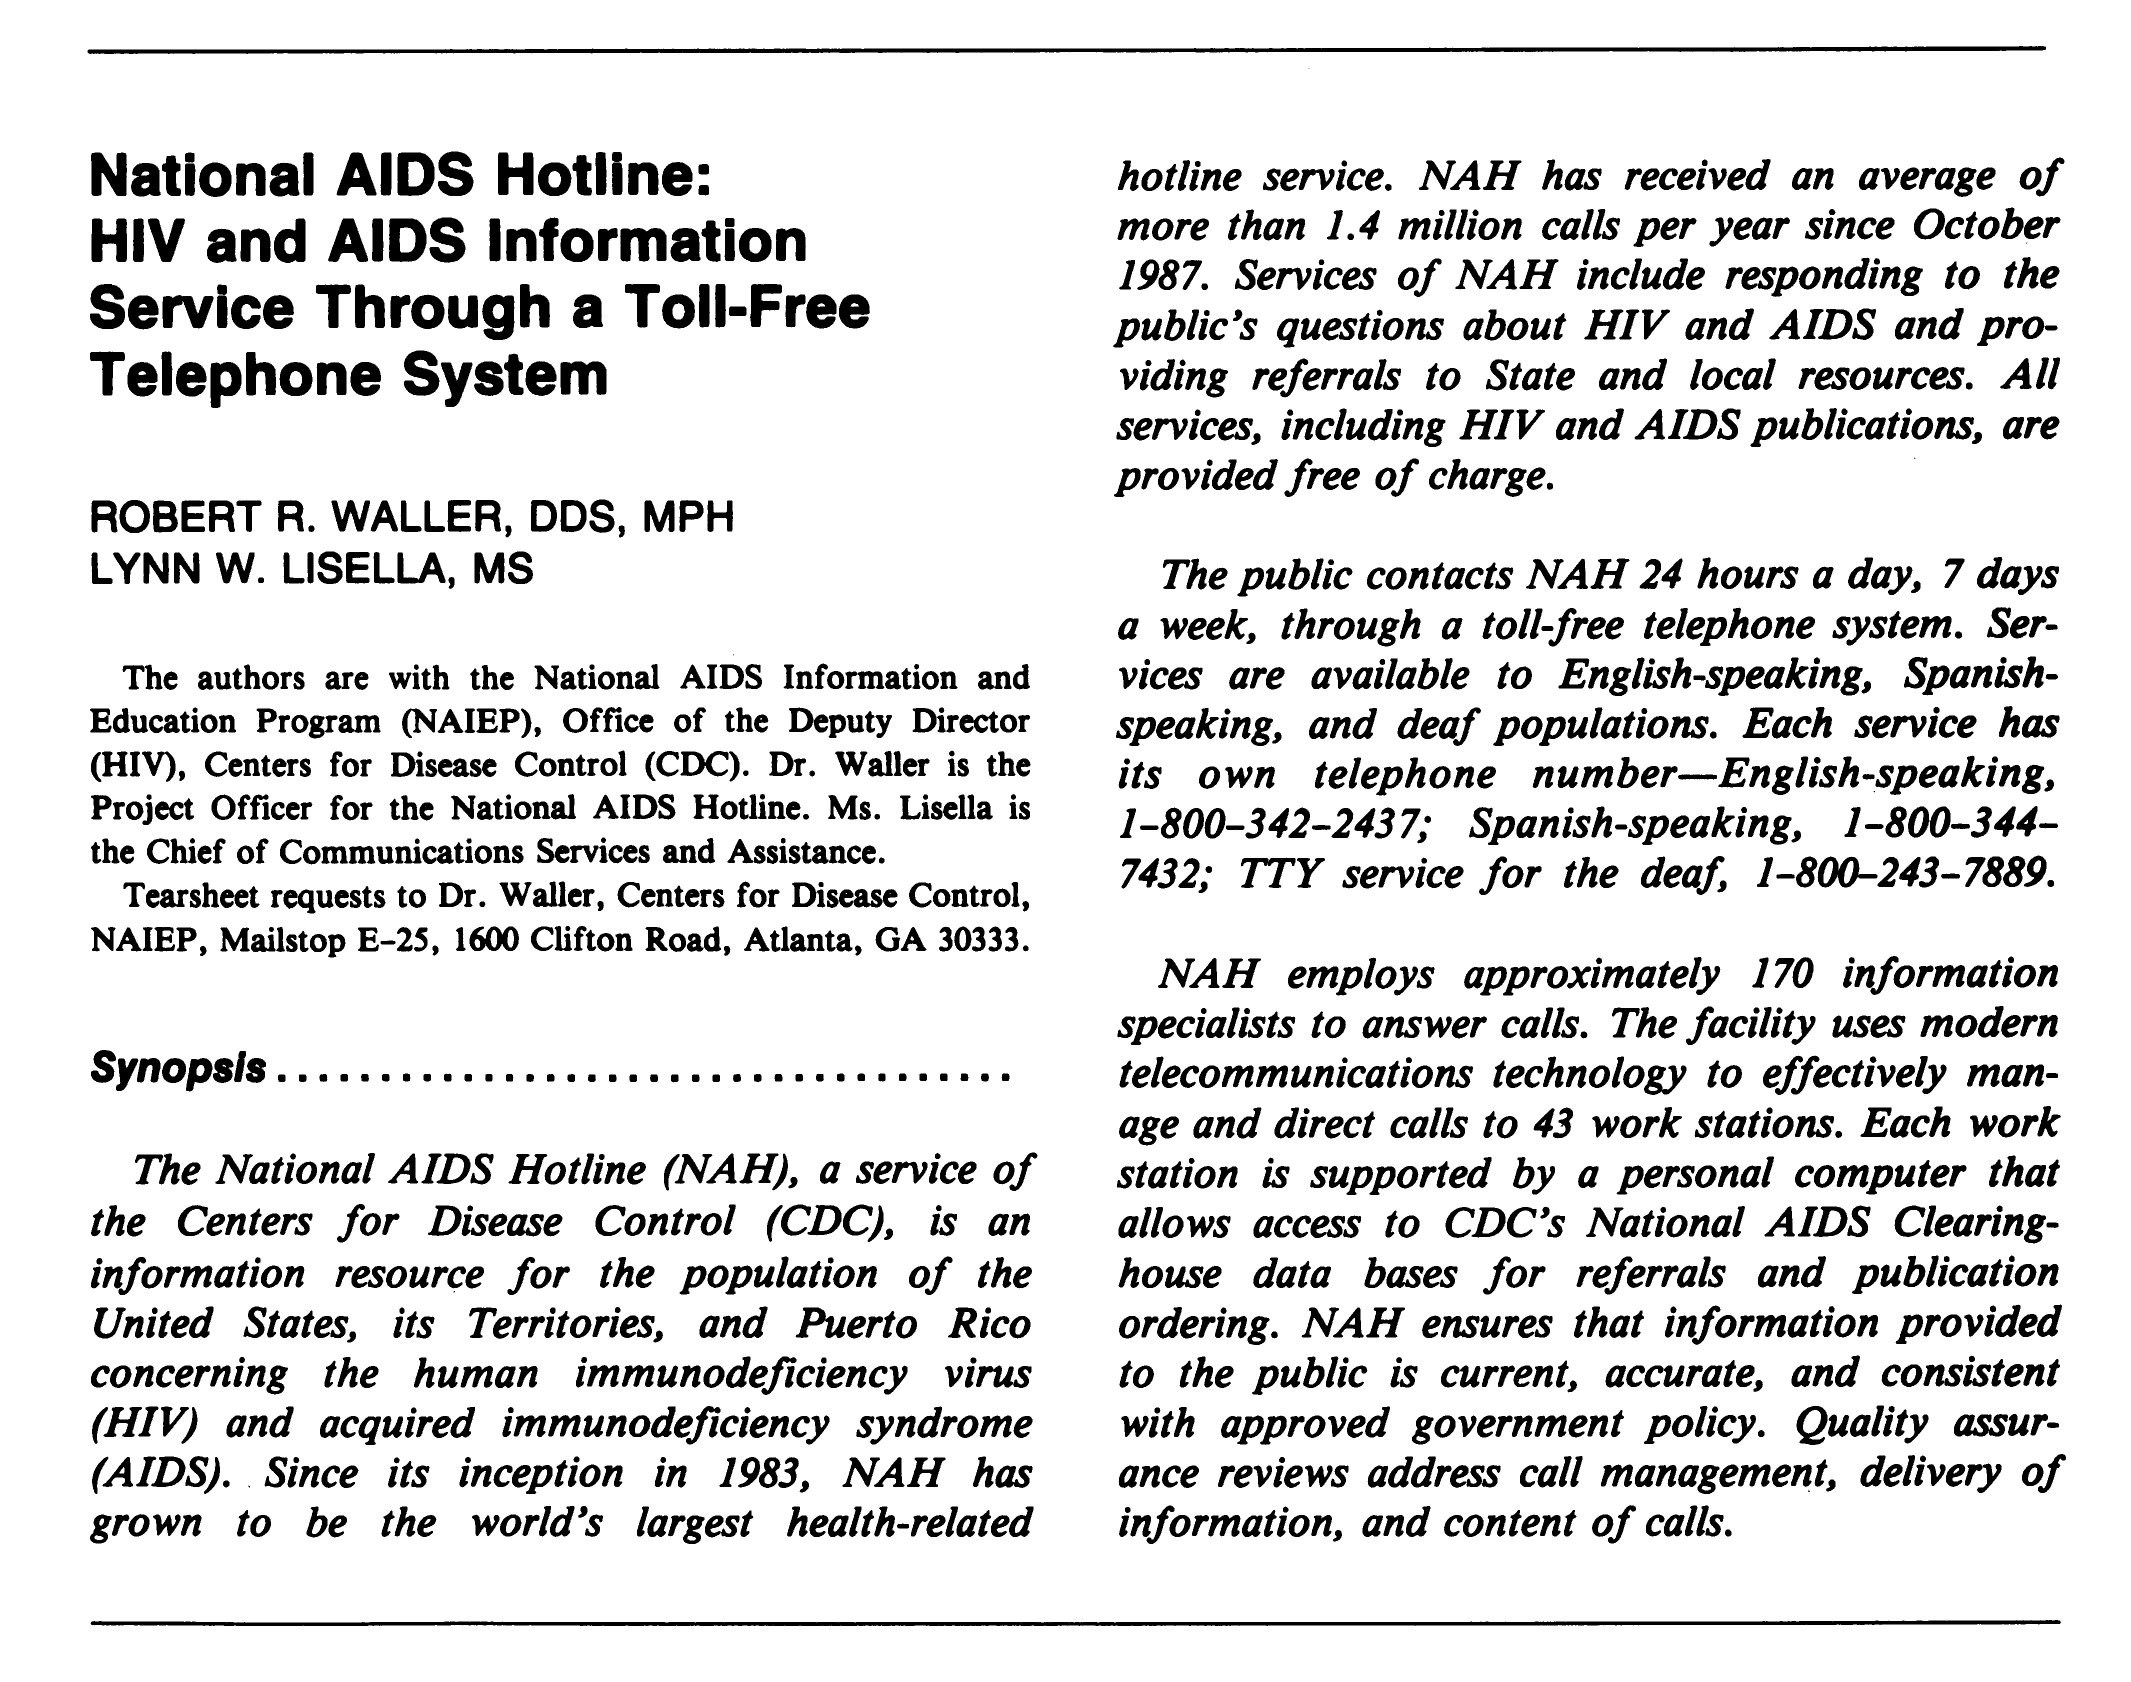 clipping from MMWR about the National AIDS Hotline